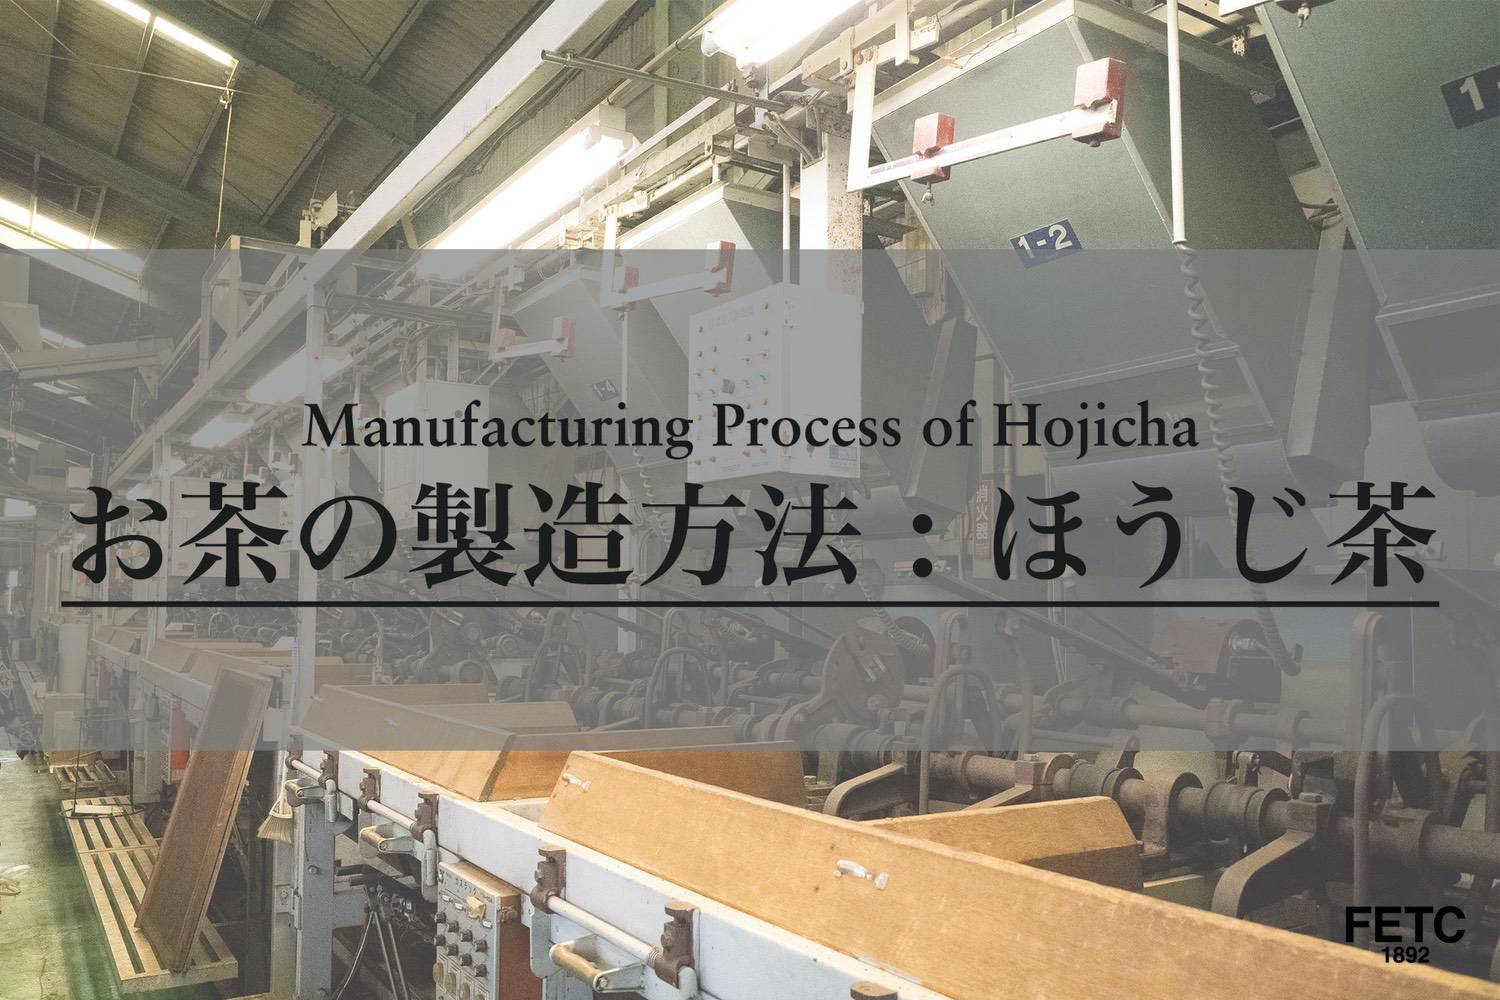 Manufacturing Process of Hojicha